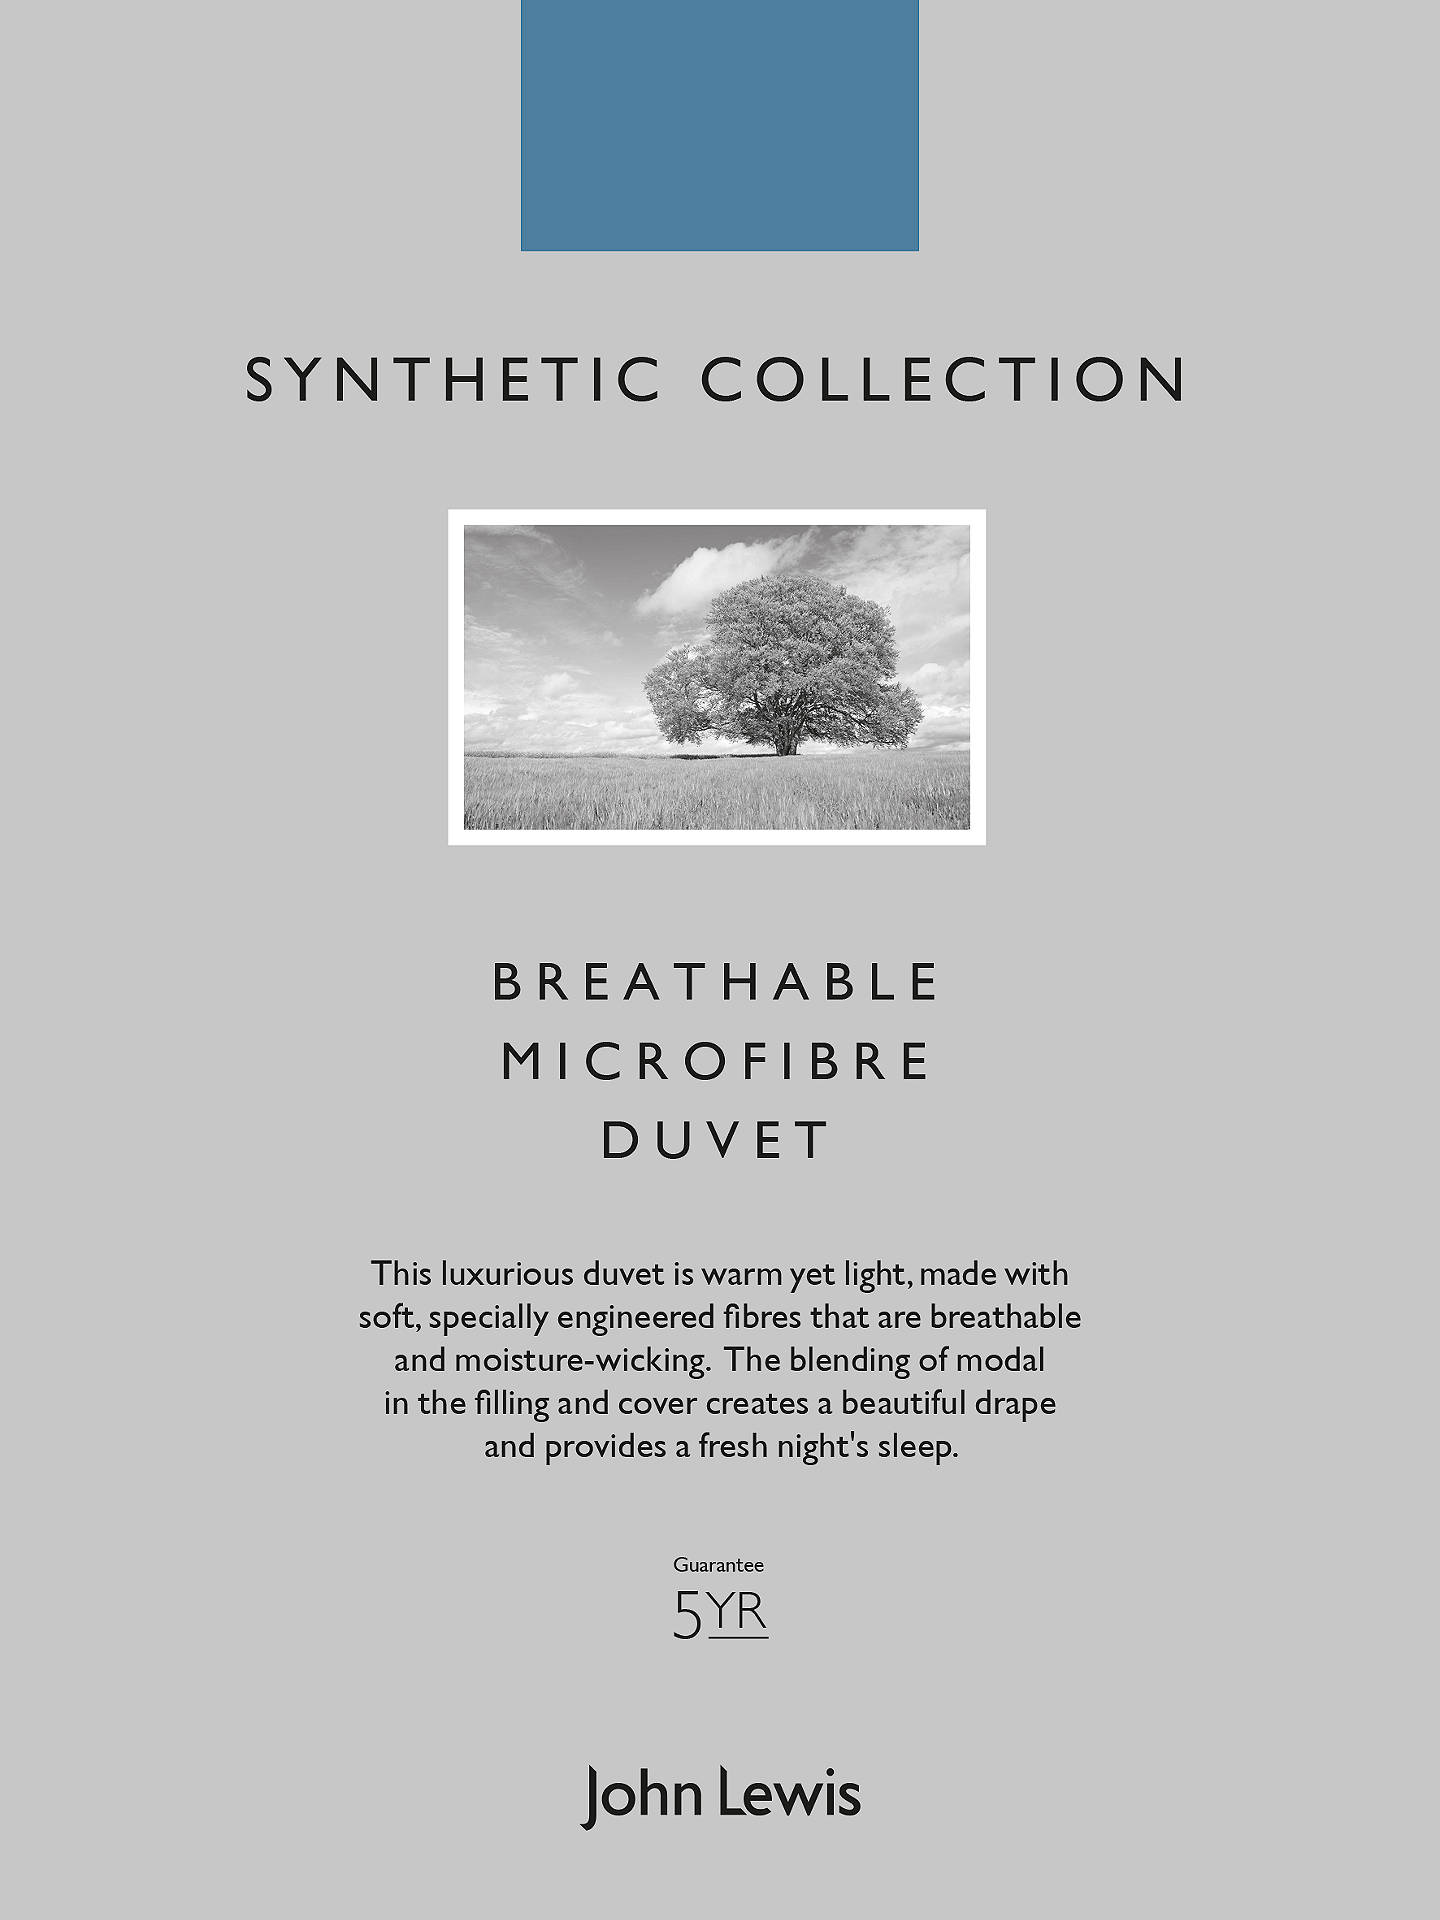 BuyJohn Lewis & Partners Synthetic Collection Breathable Microfibre Duvet, 13.5 Tog, Super King Online at johnlewis.com